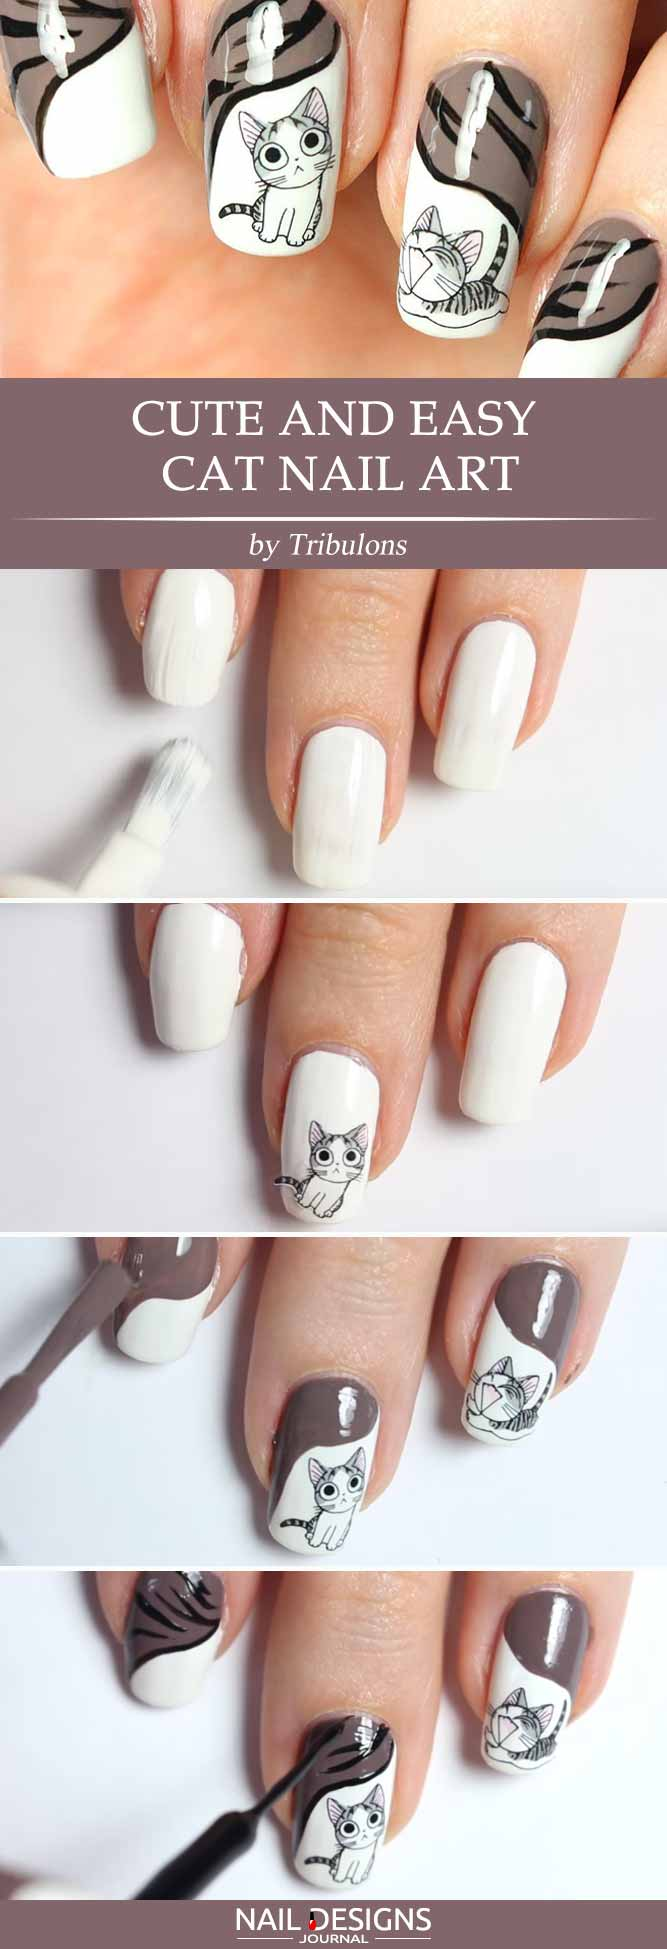 10 diy nails ideas to shine brighter naildesignsjournal easy cat nail art prinsesfo Image collections